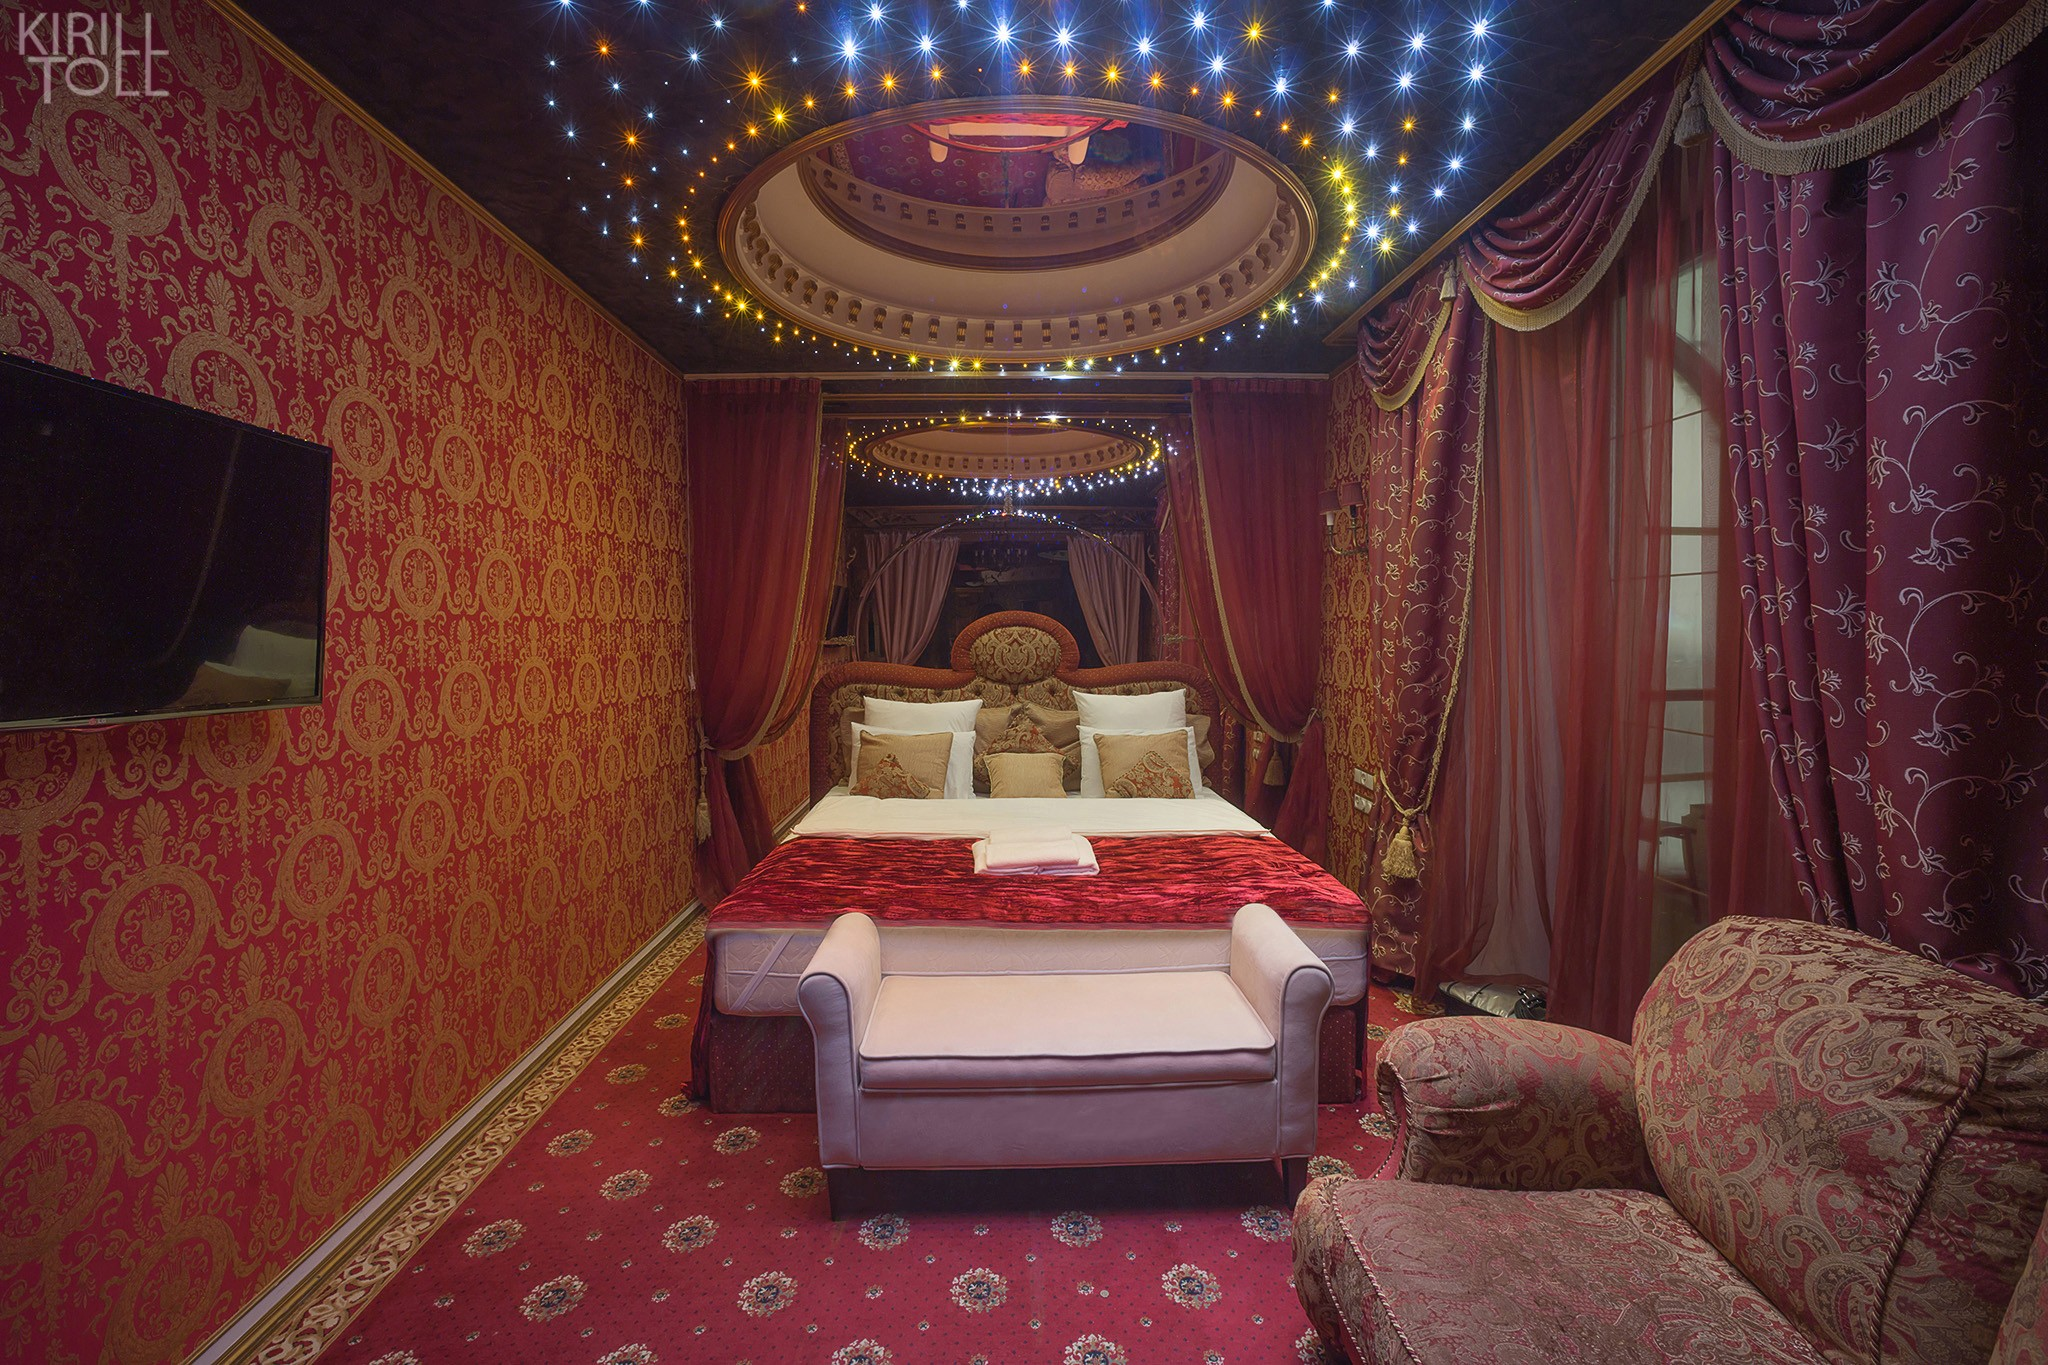 Hotel interior photography in the historical center of Moscow